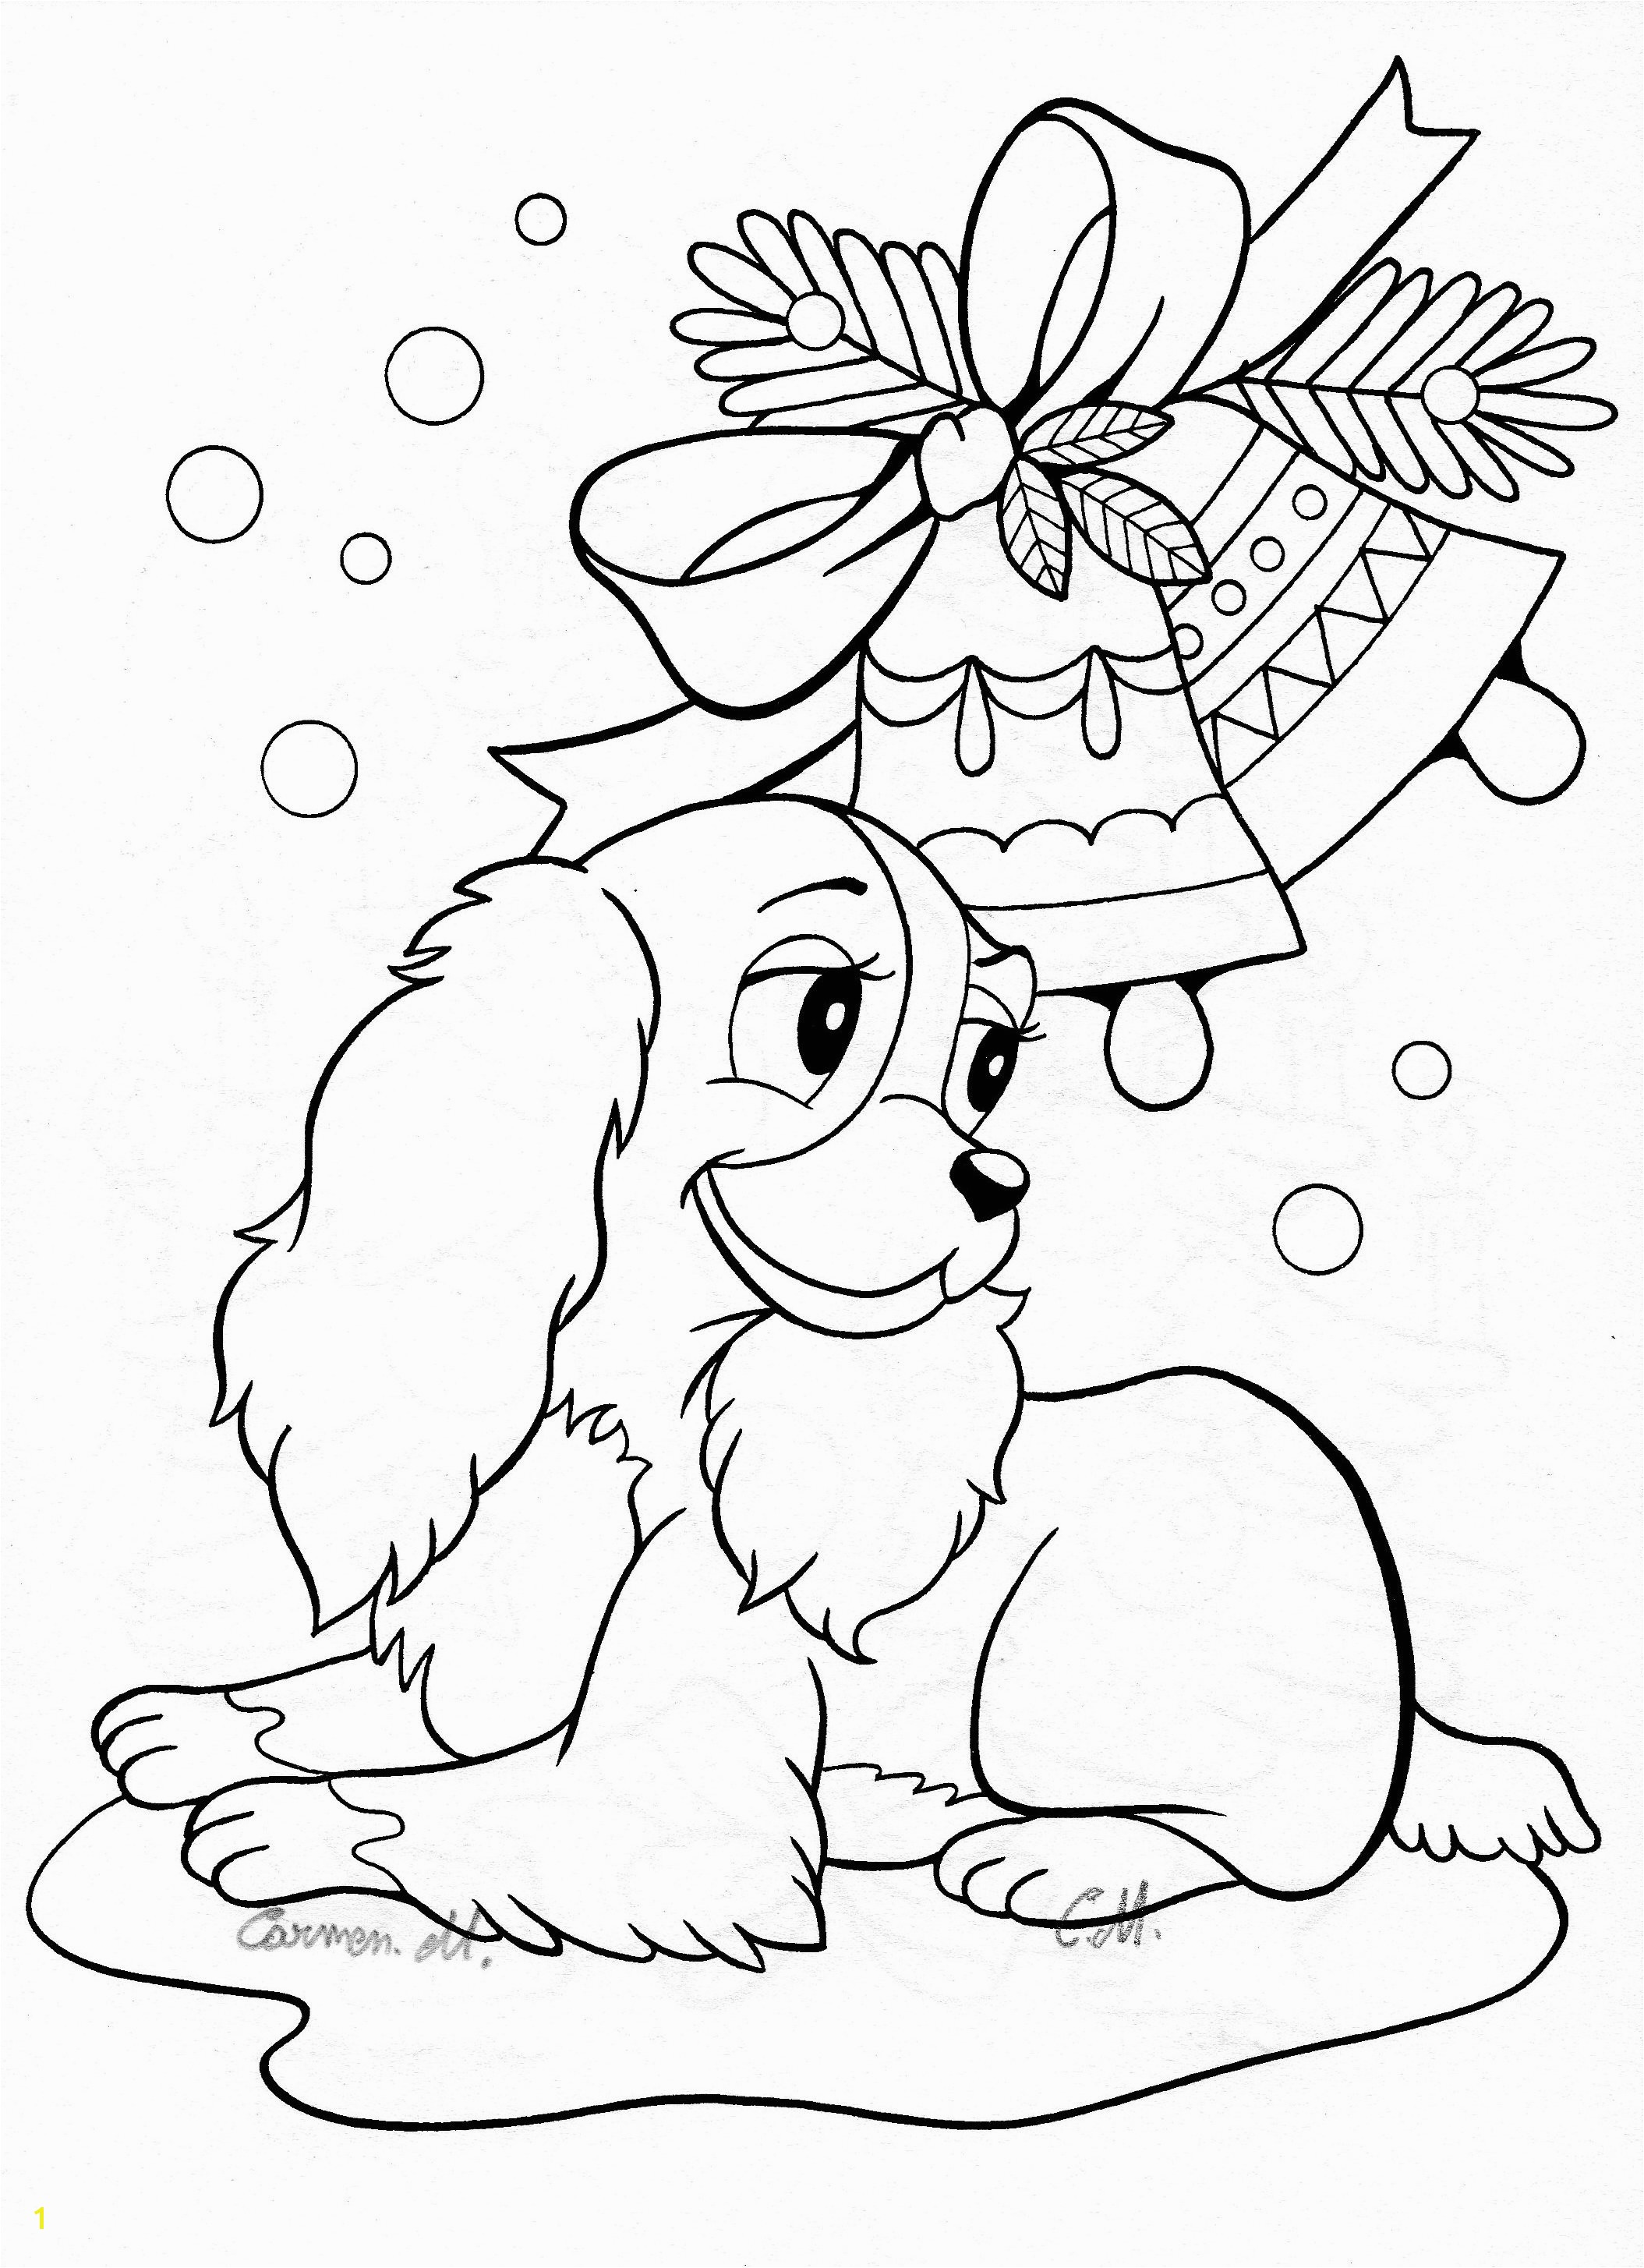 Free Printable Kids Coloring Pages Luxury Printable Od Dog Coloring Pages Free Colouring Pages Free Coloring